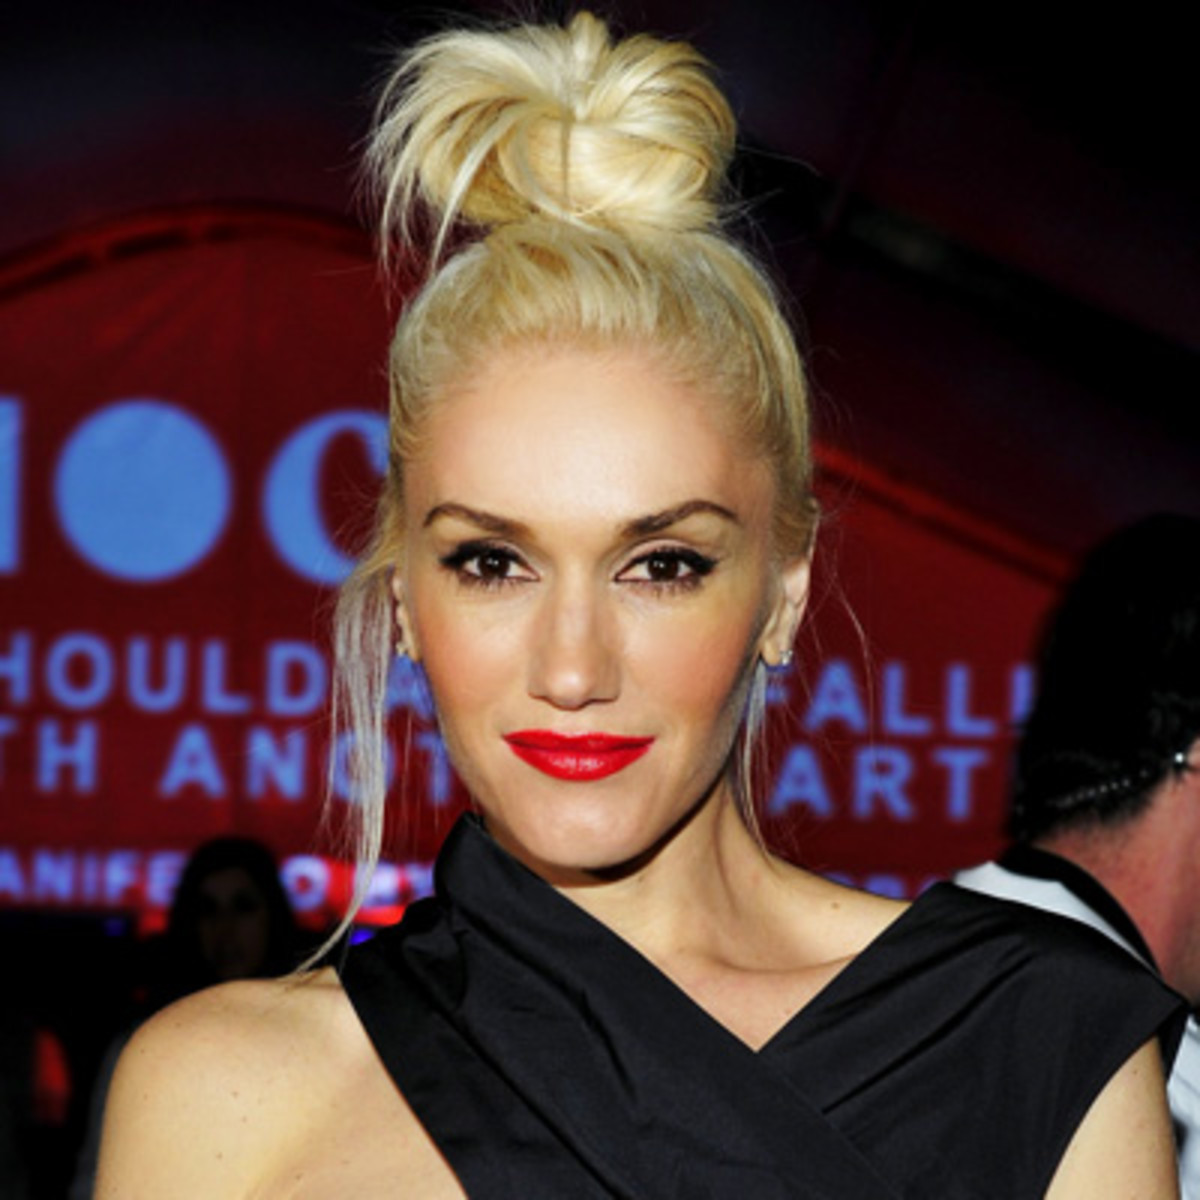 Gwen-Stefani-full-eyebrows